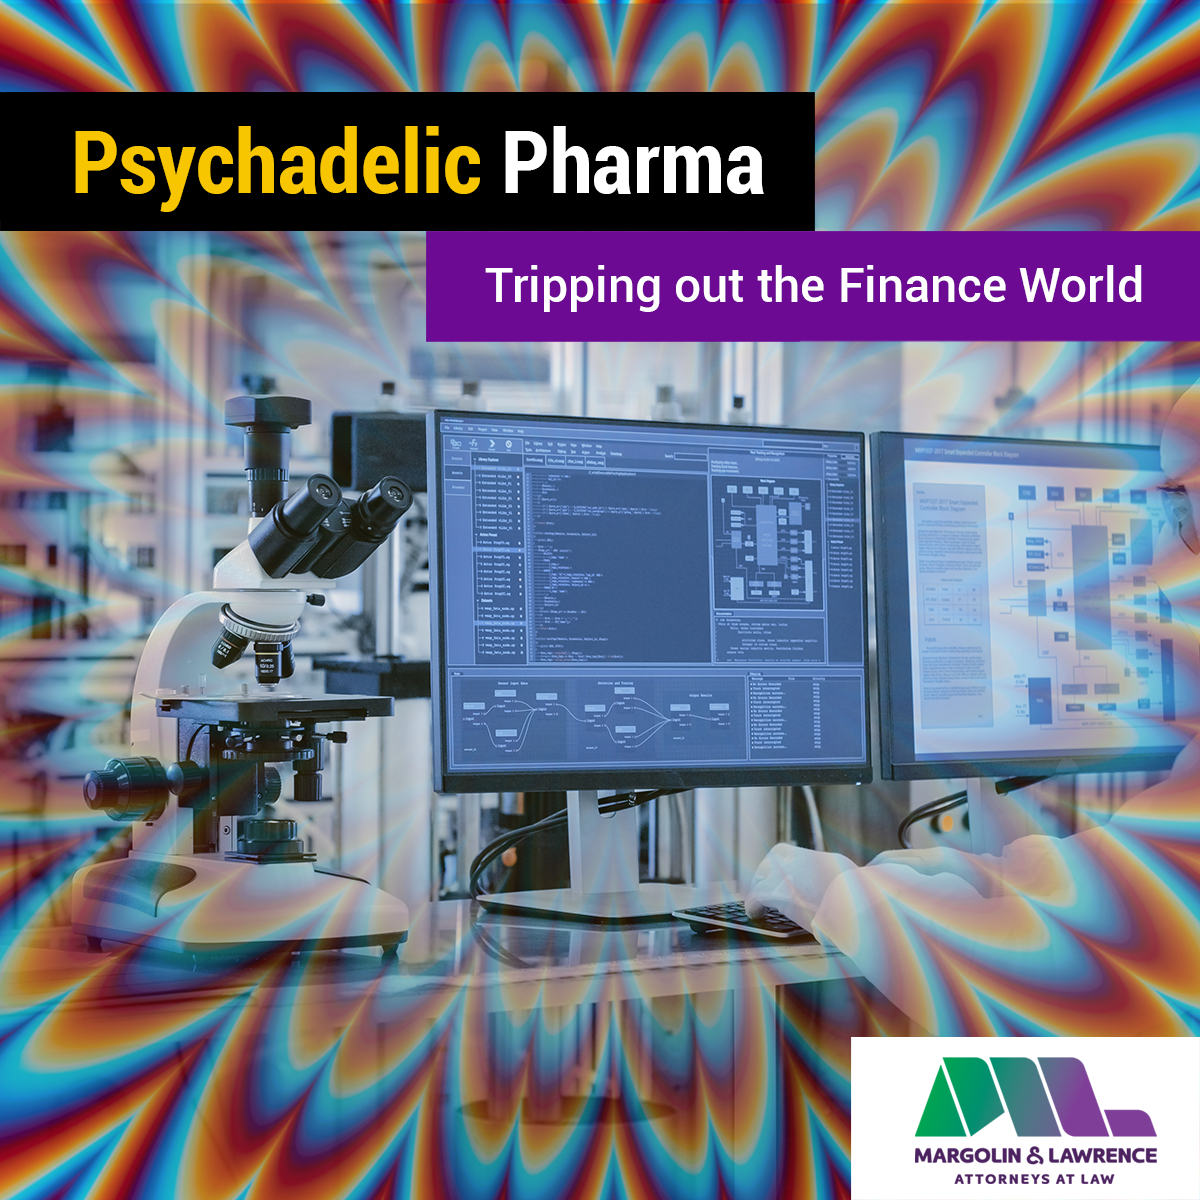 Psychedelic Pharma Tripping out the Finance World